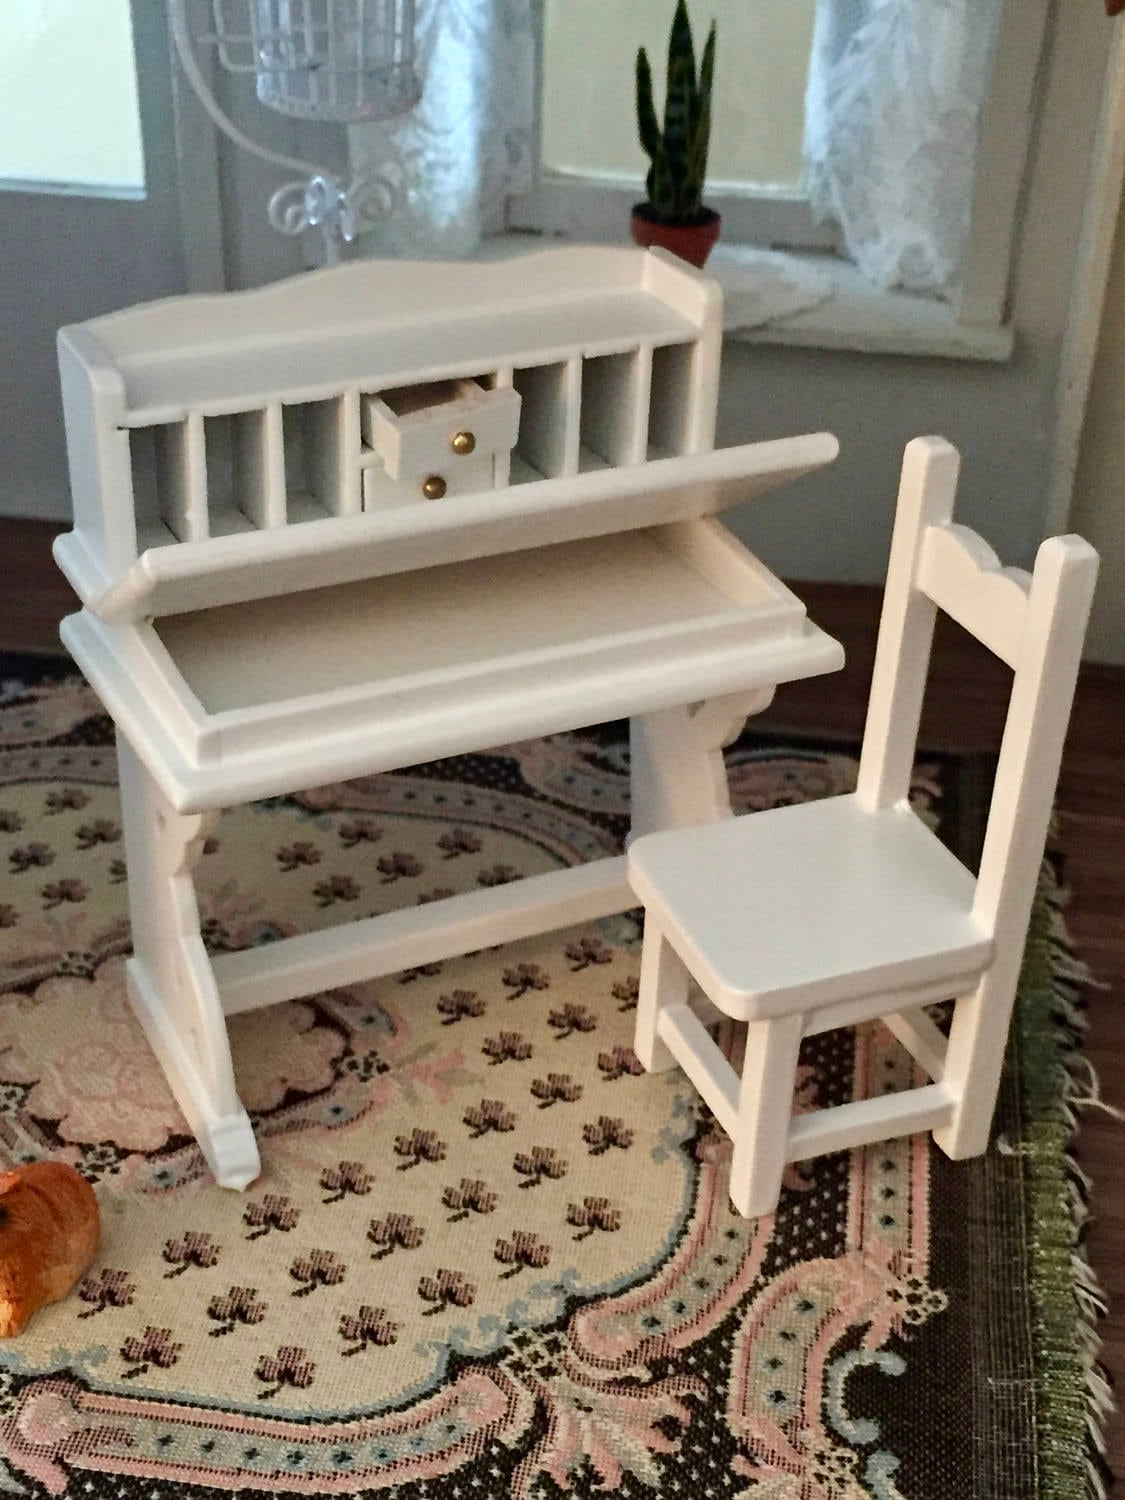 Miniature Desk And Chair White Flip Top Desk With Drawers And